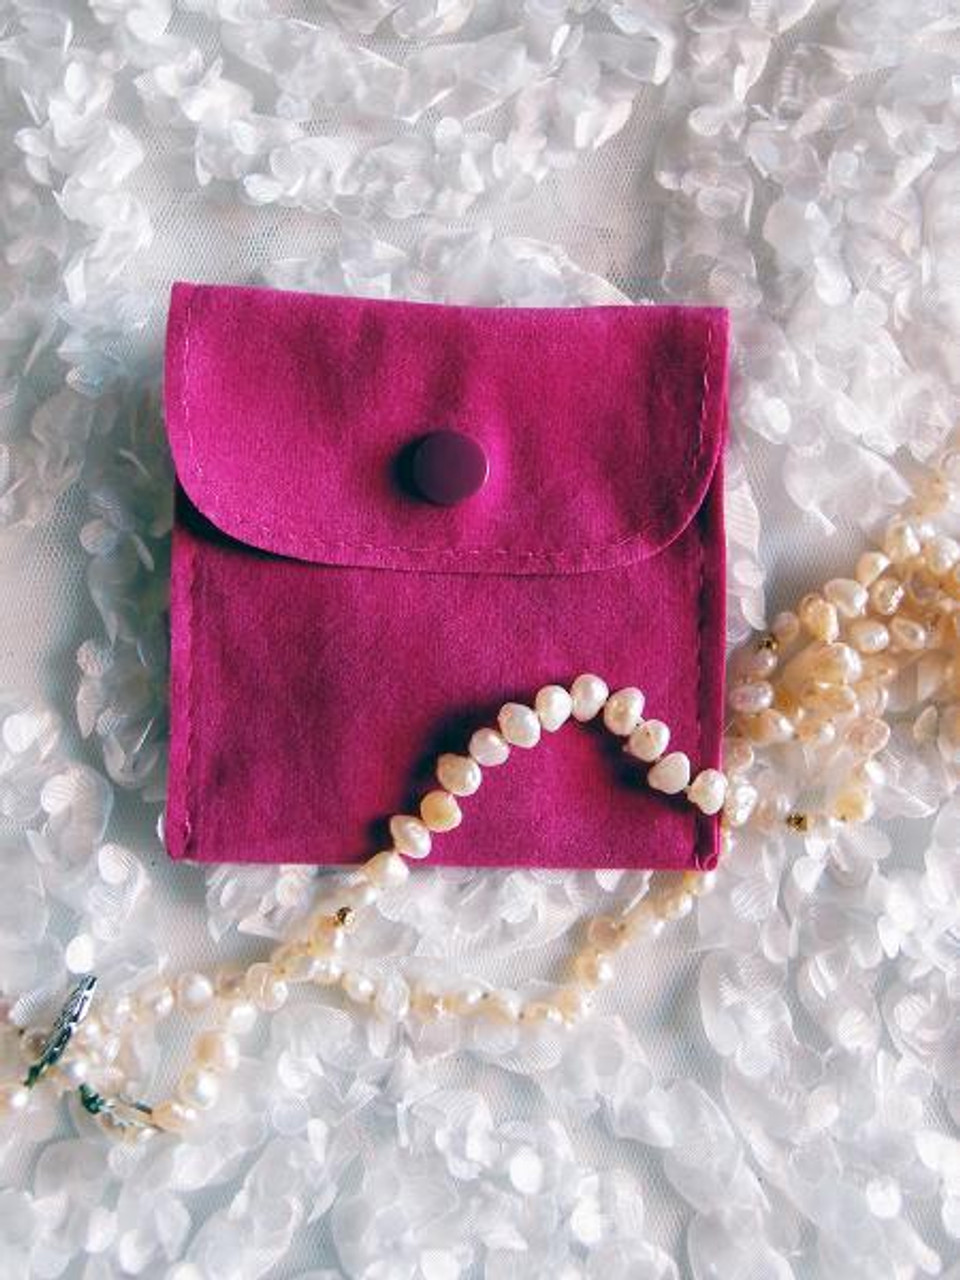 Roseberry Velvet Jewelry Pouch with Snap Fastener 3 x 3 inches J134-09   Packaging Decor